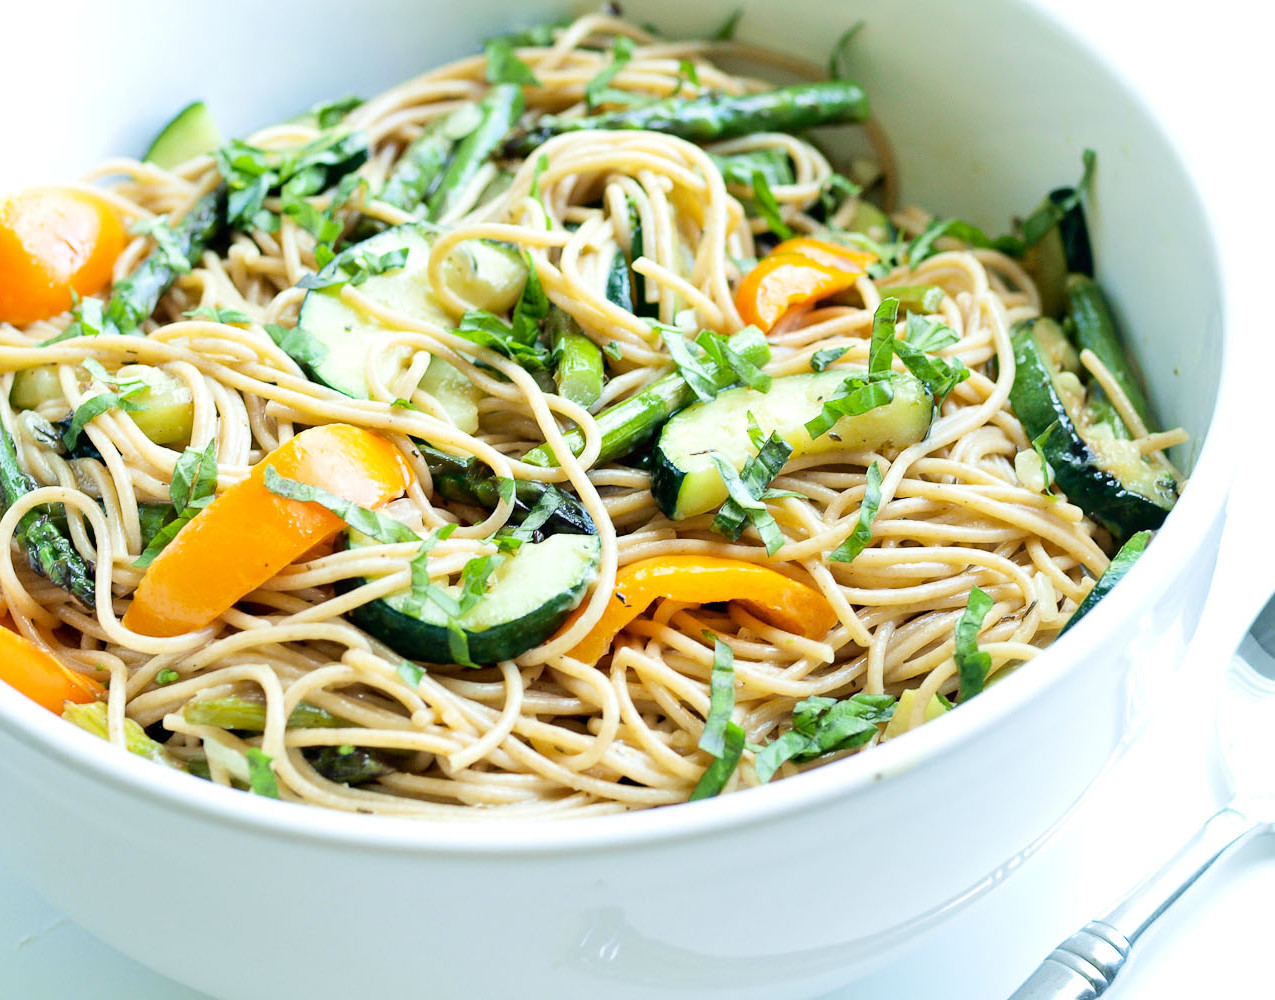 grilled vegetables and pasta